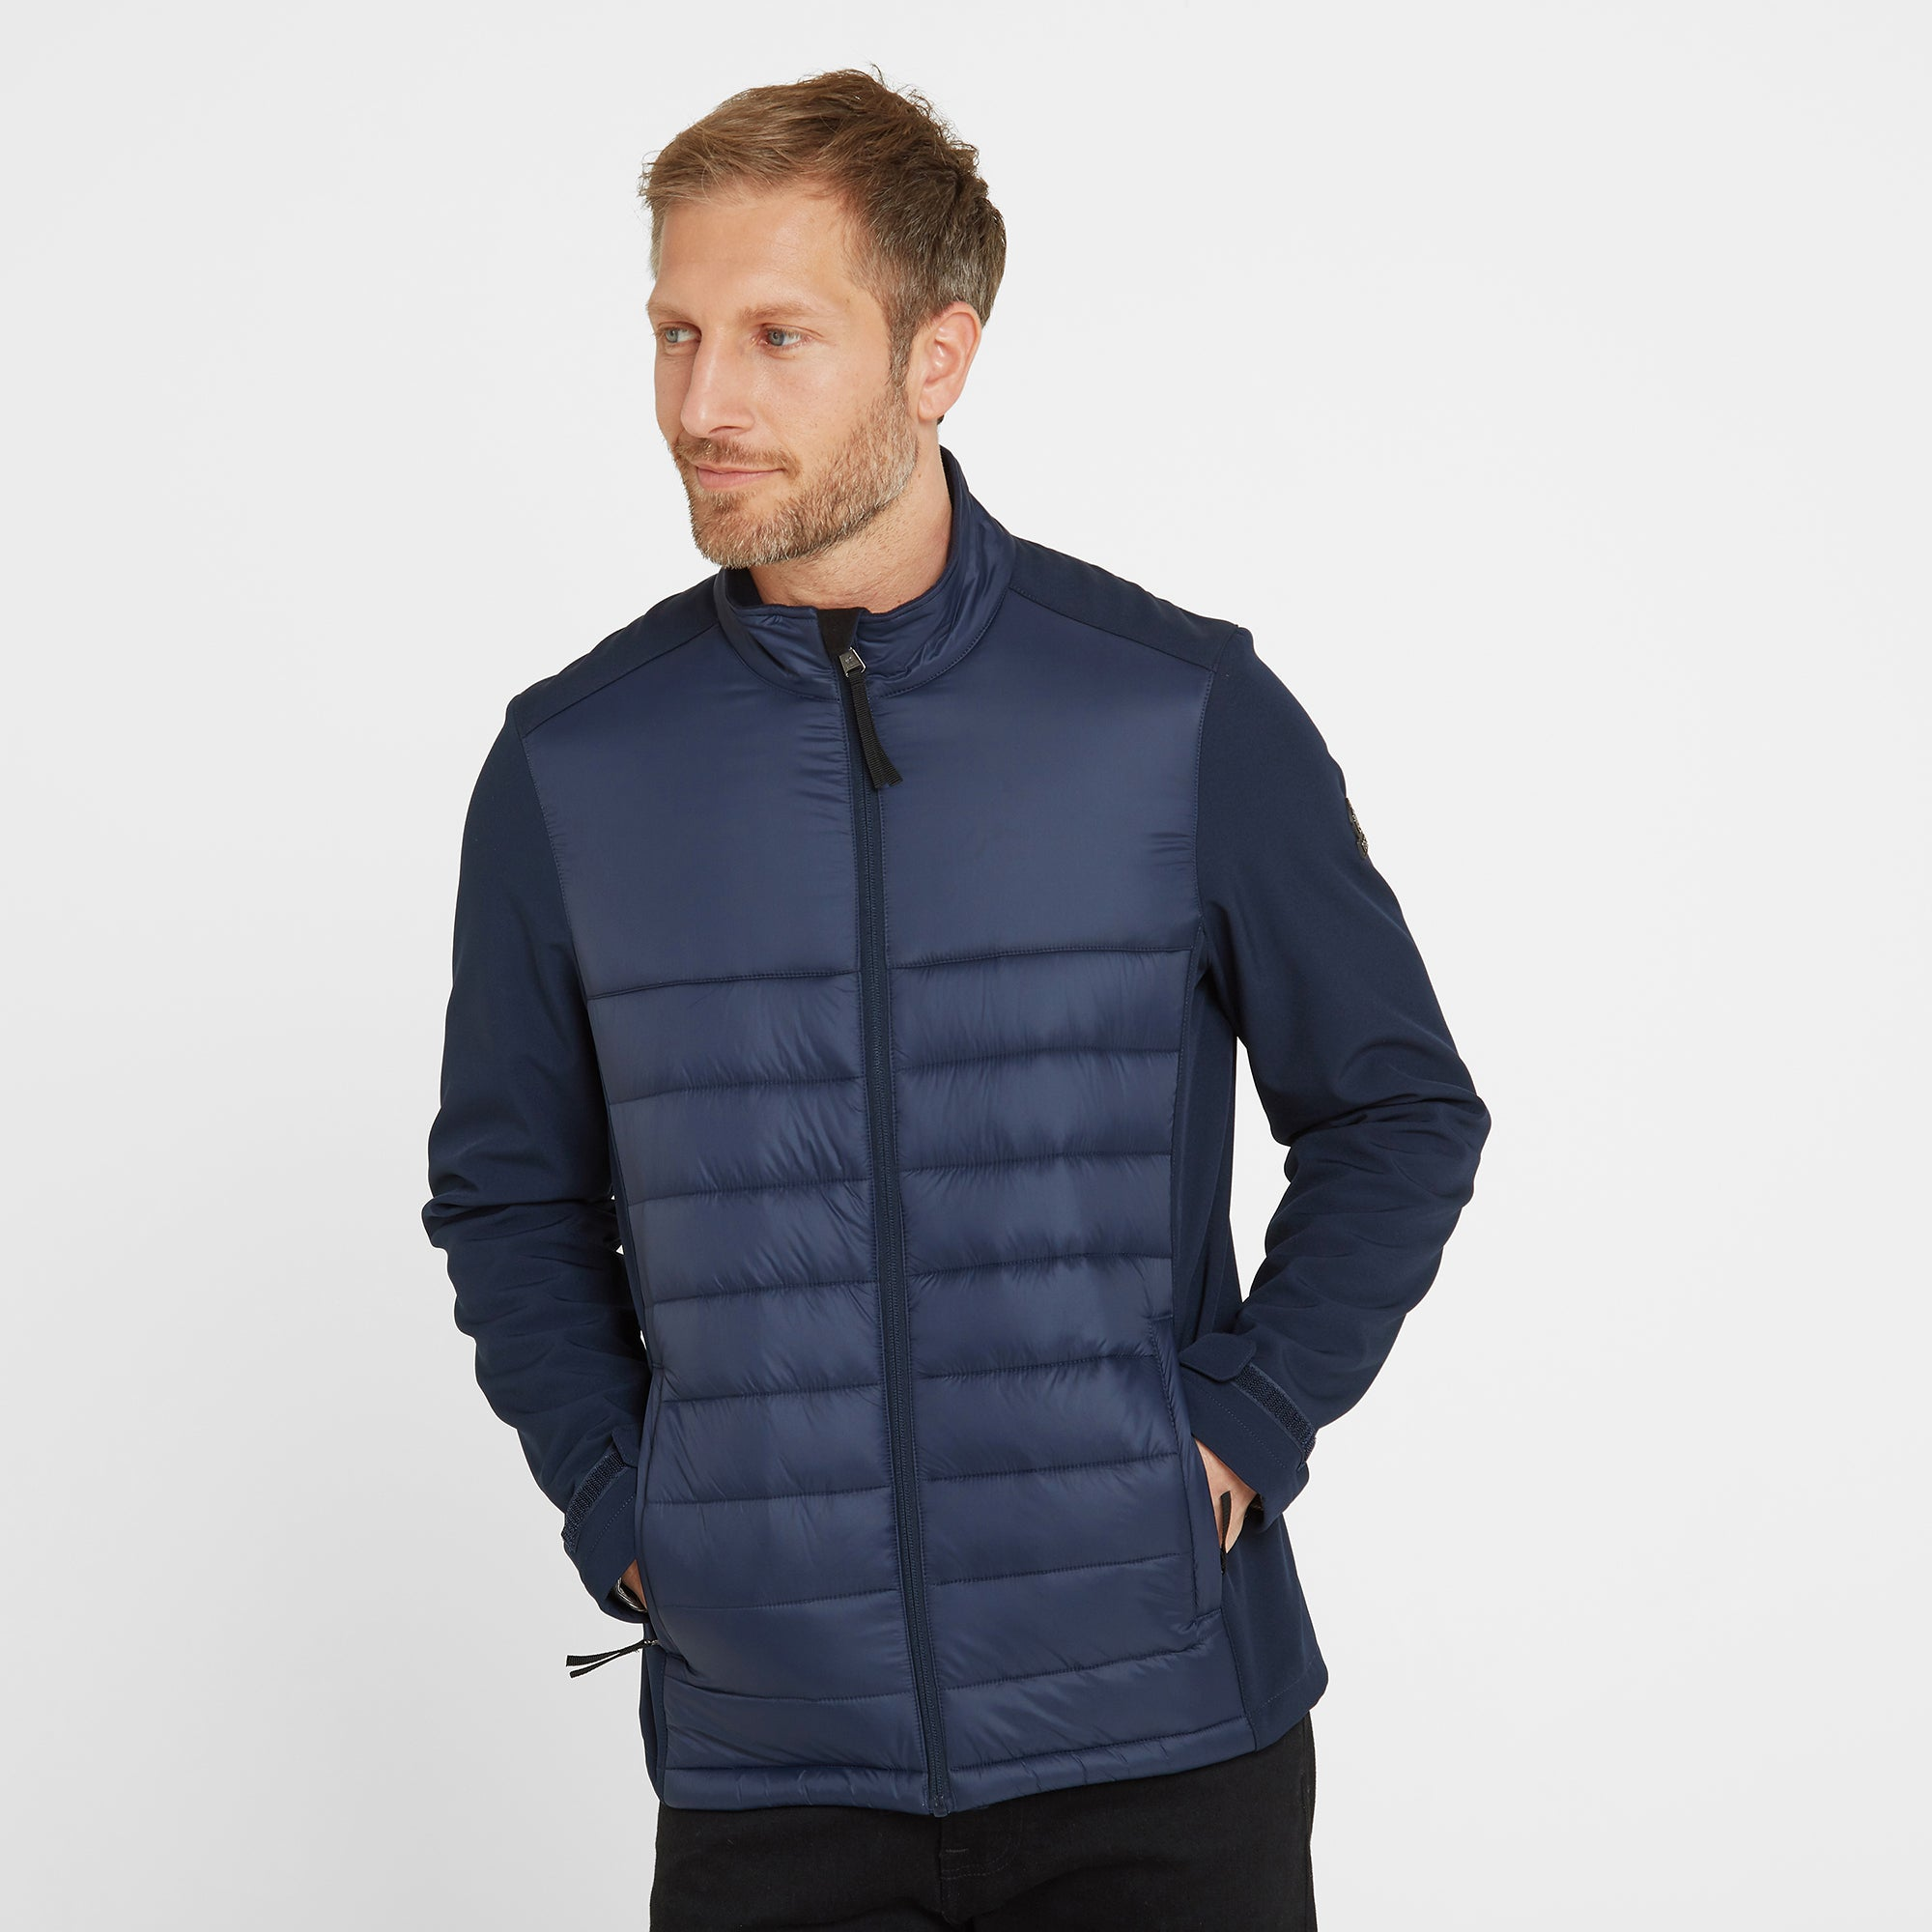 Stamford Mens Insulated Jacket - Navy